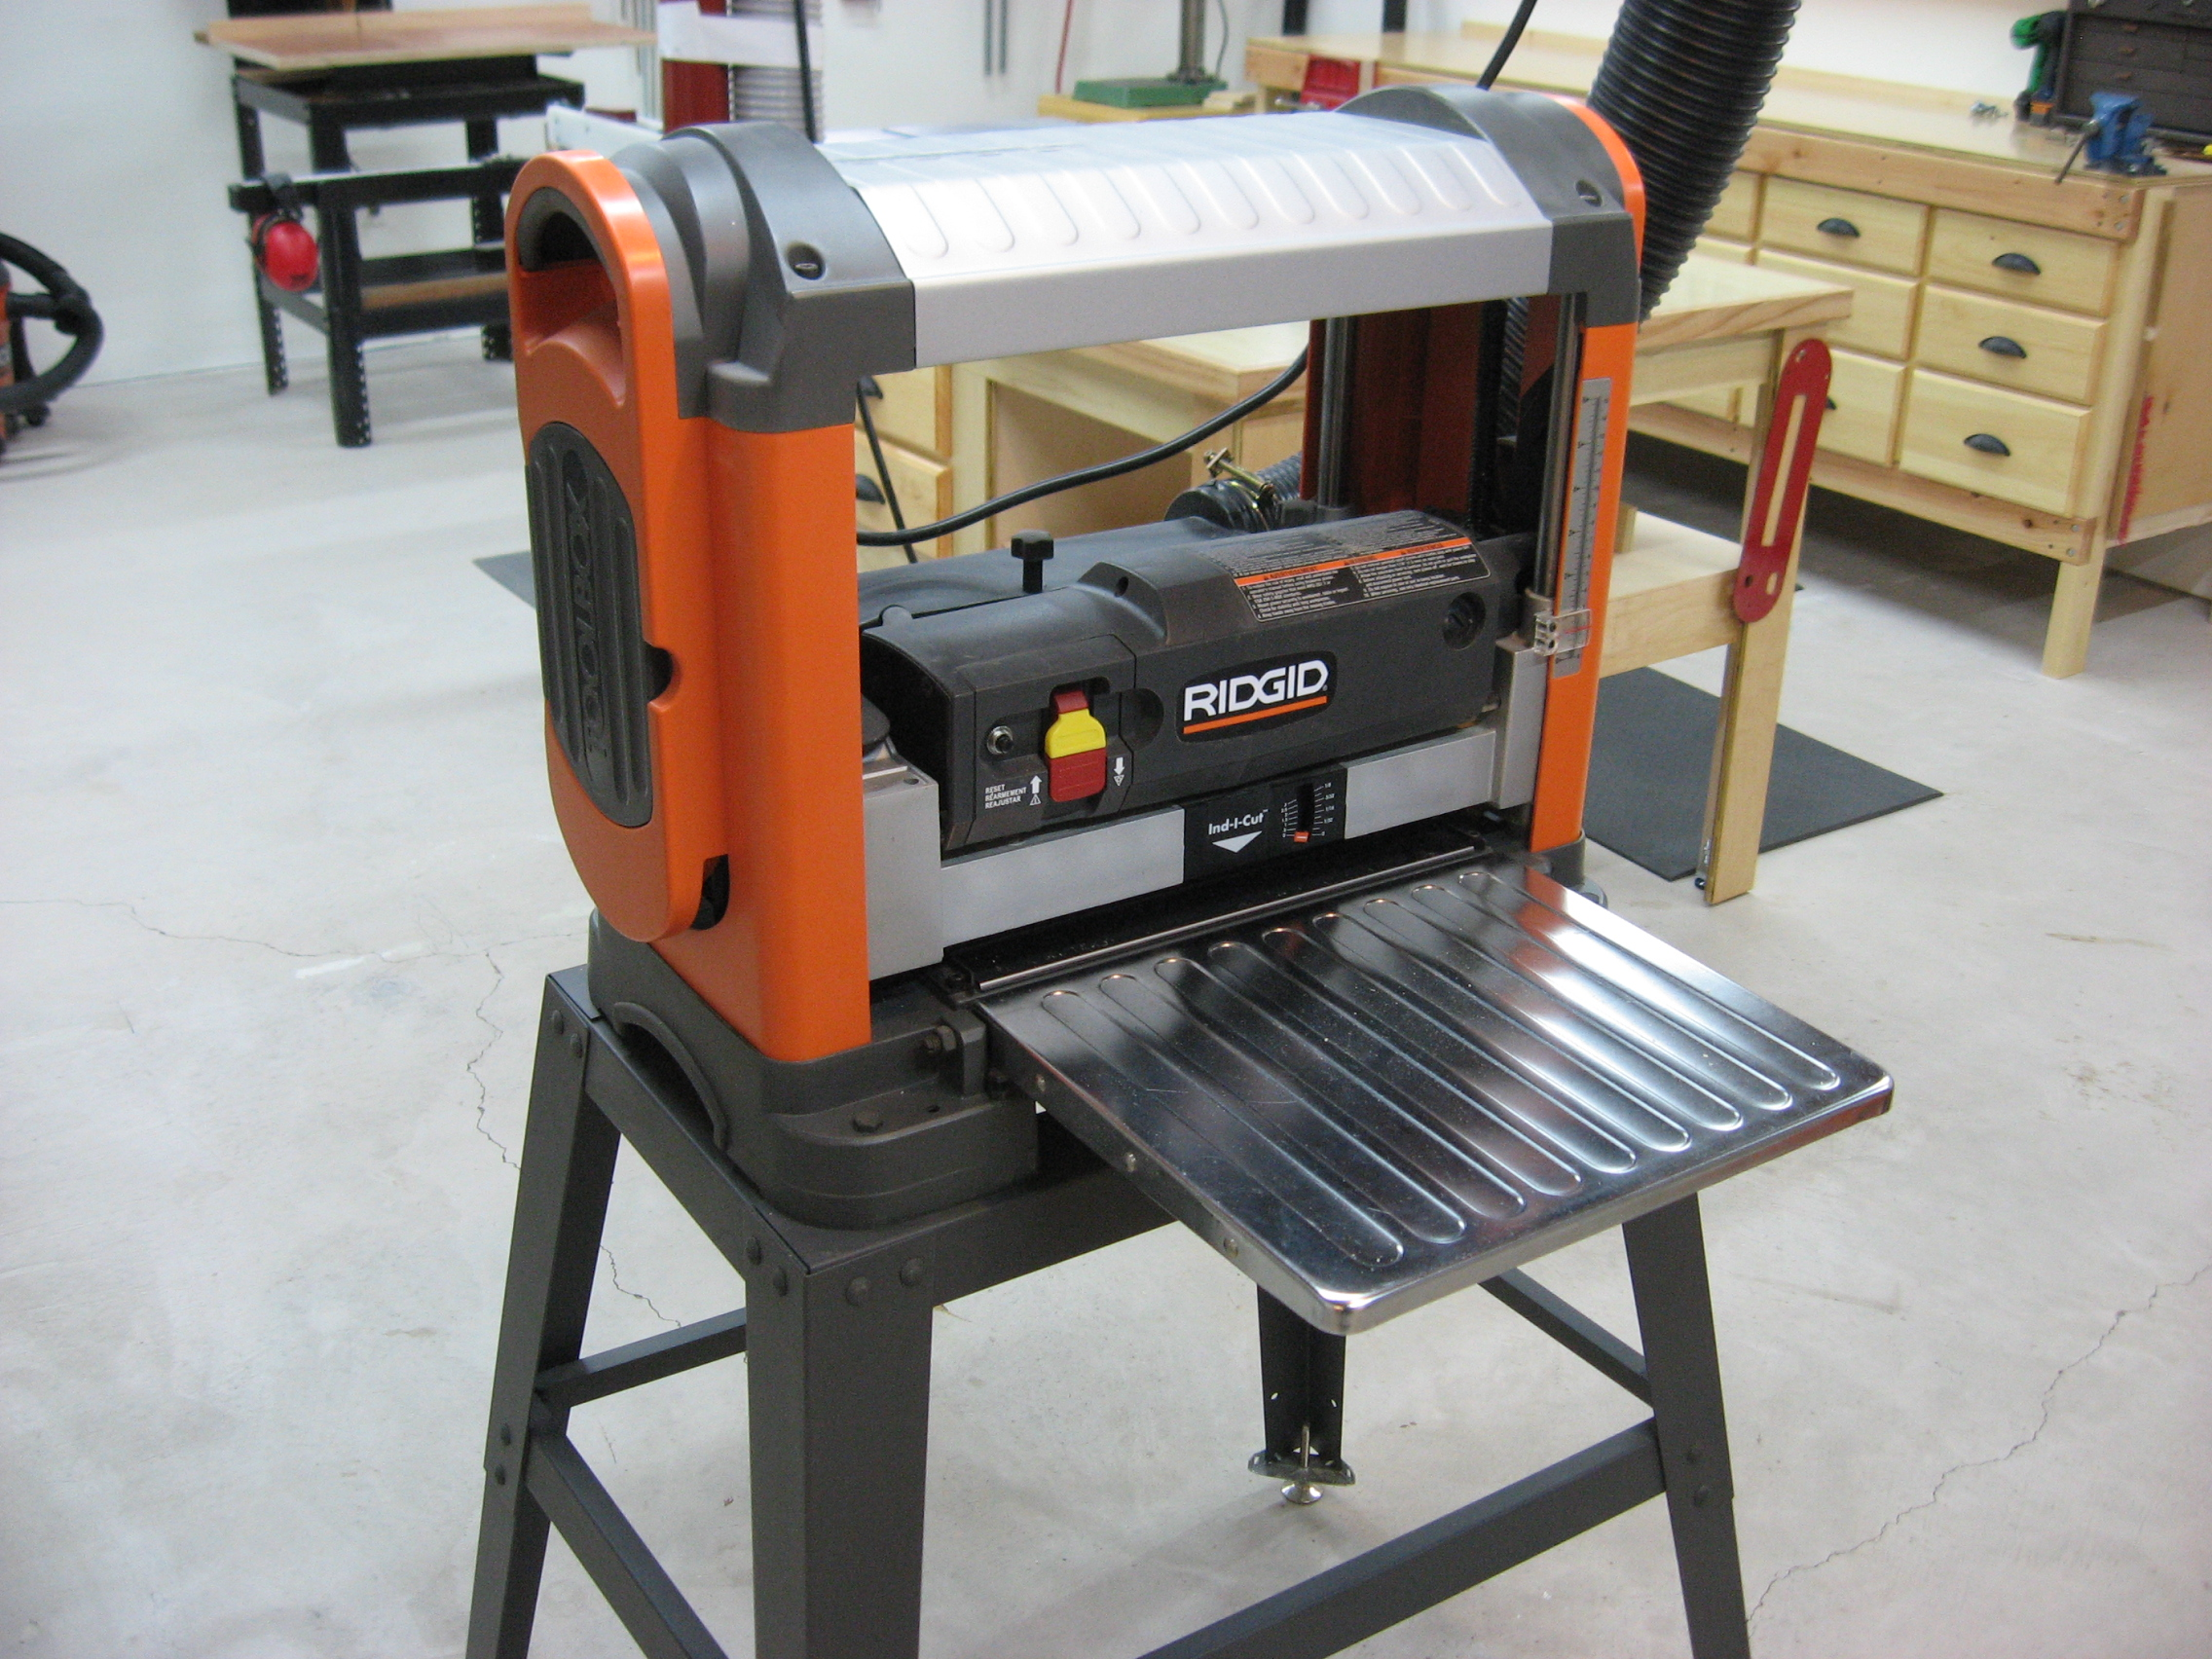 Ridgid planer rollers images for 12 inch ridgid table saw